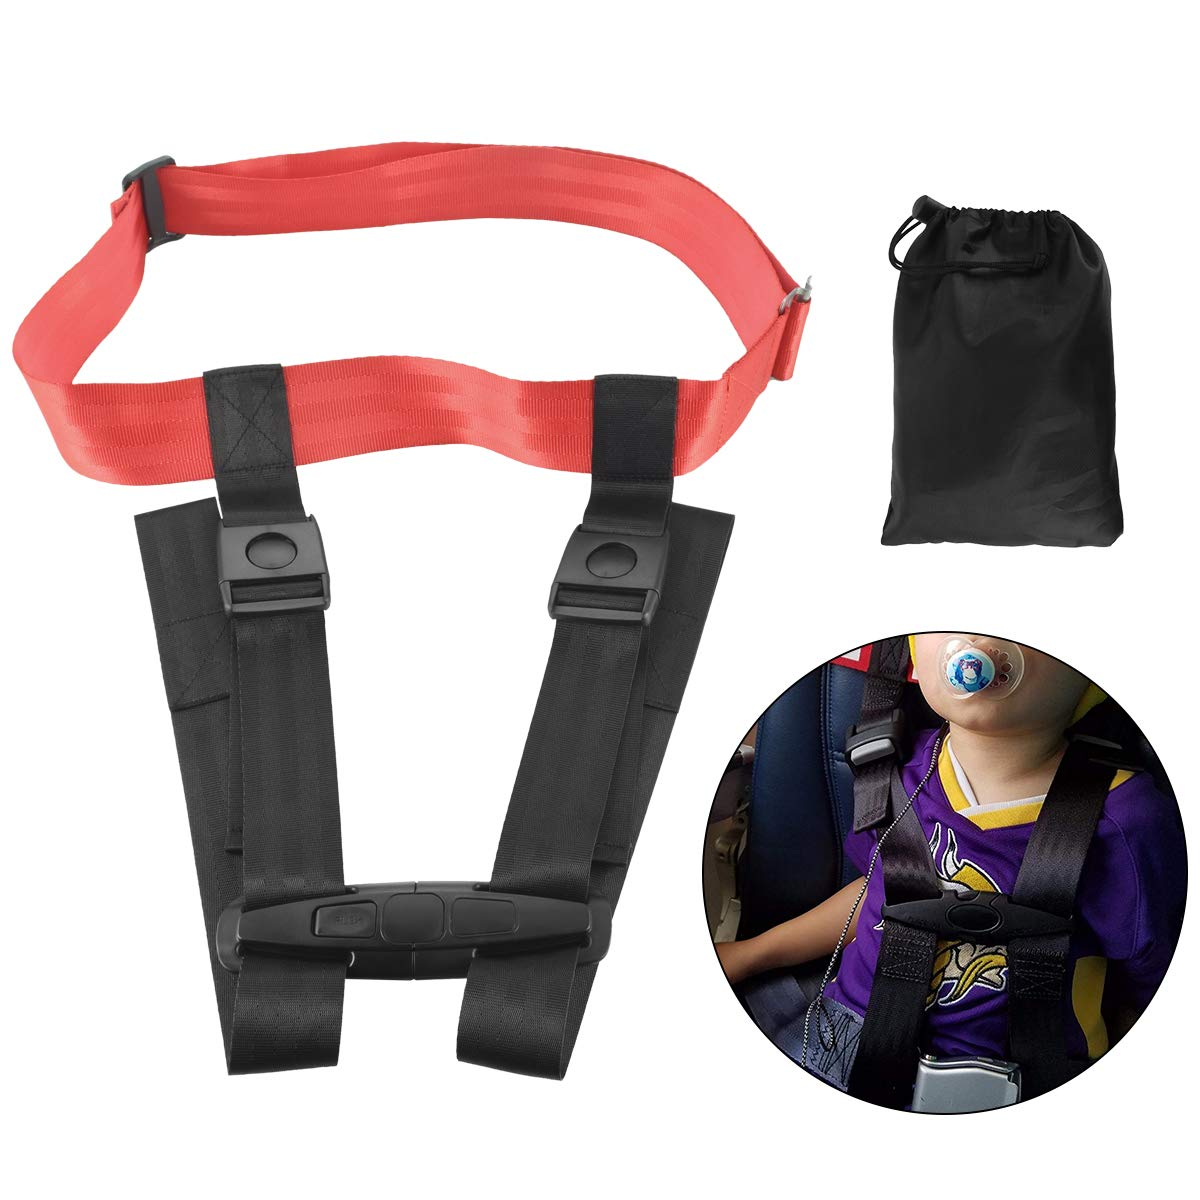 Ansblue Child Safety Harness Airplane Travel Clip Strap with Carry Pouch Bag.The Travel Harness Safety System Will Protect Your Child from Dangerous - 1pcs by Ansblue (Image #1)